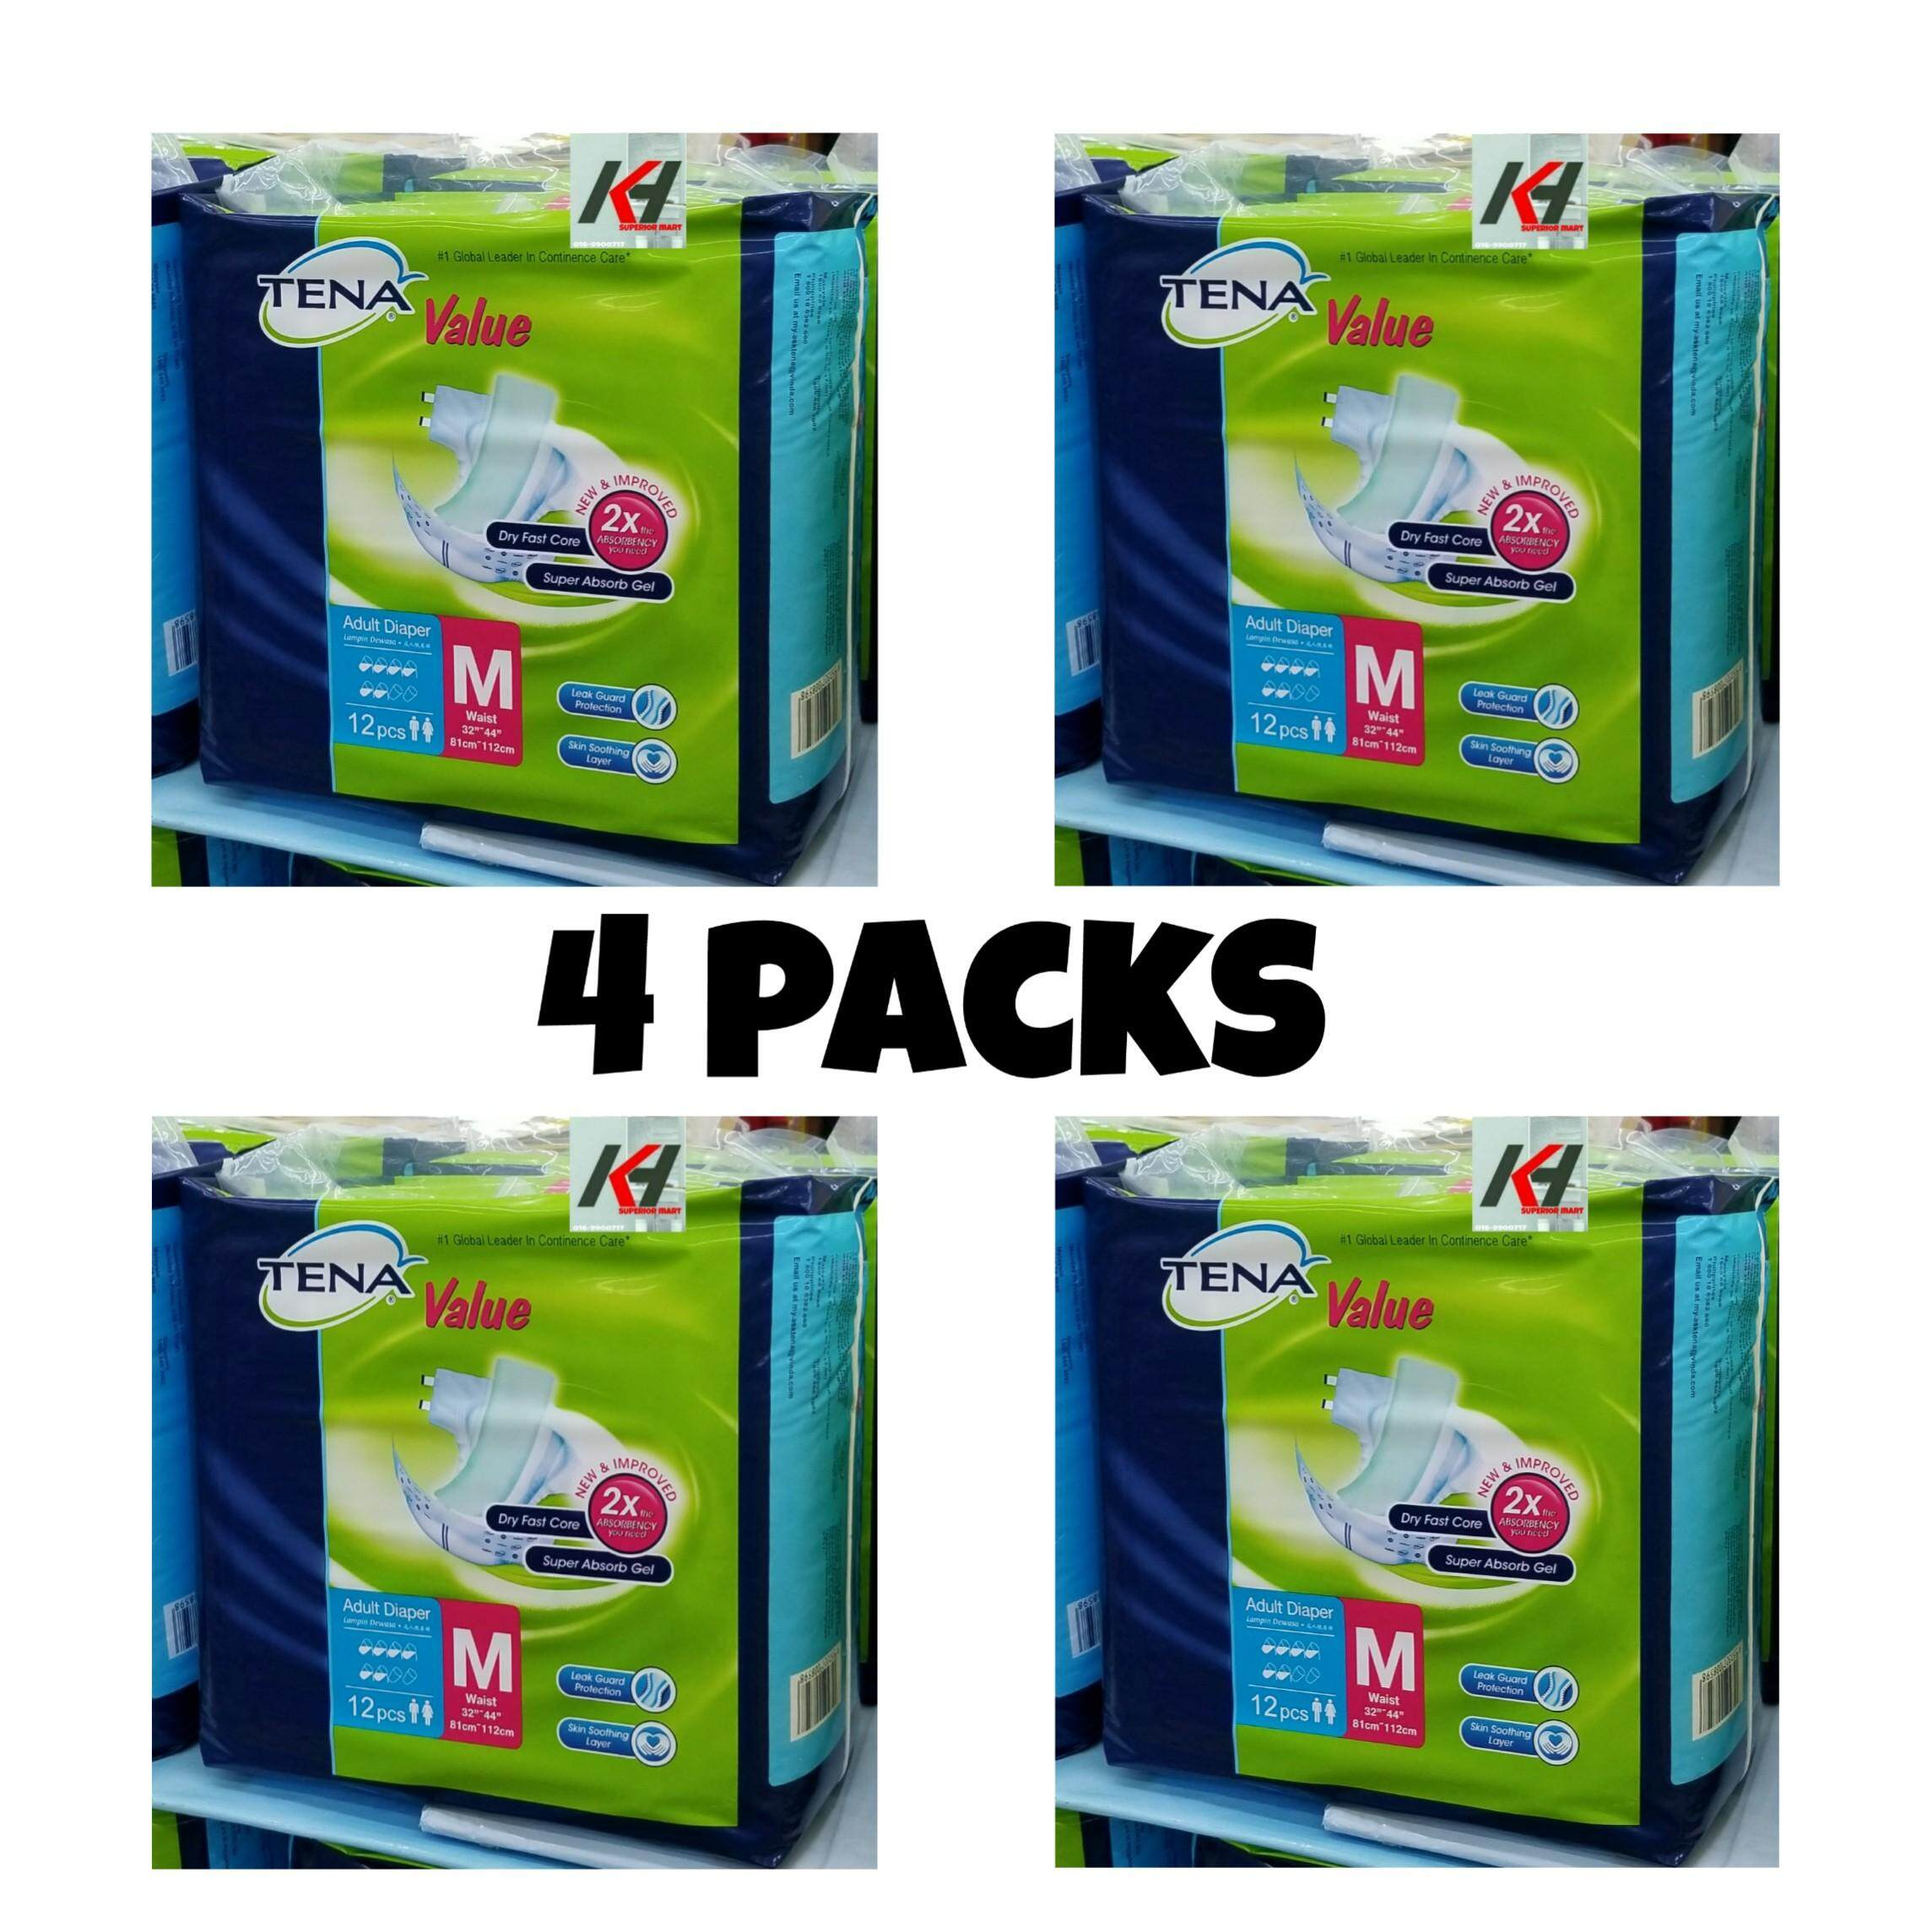 TENA VALUE ADULT TAPE DIAPER SIZE:M12 X (4 PACKS) READY STOCK